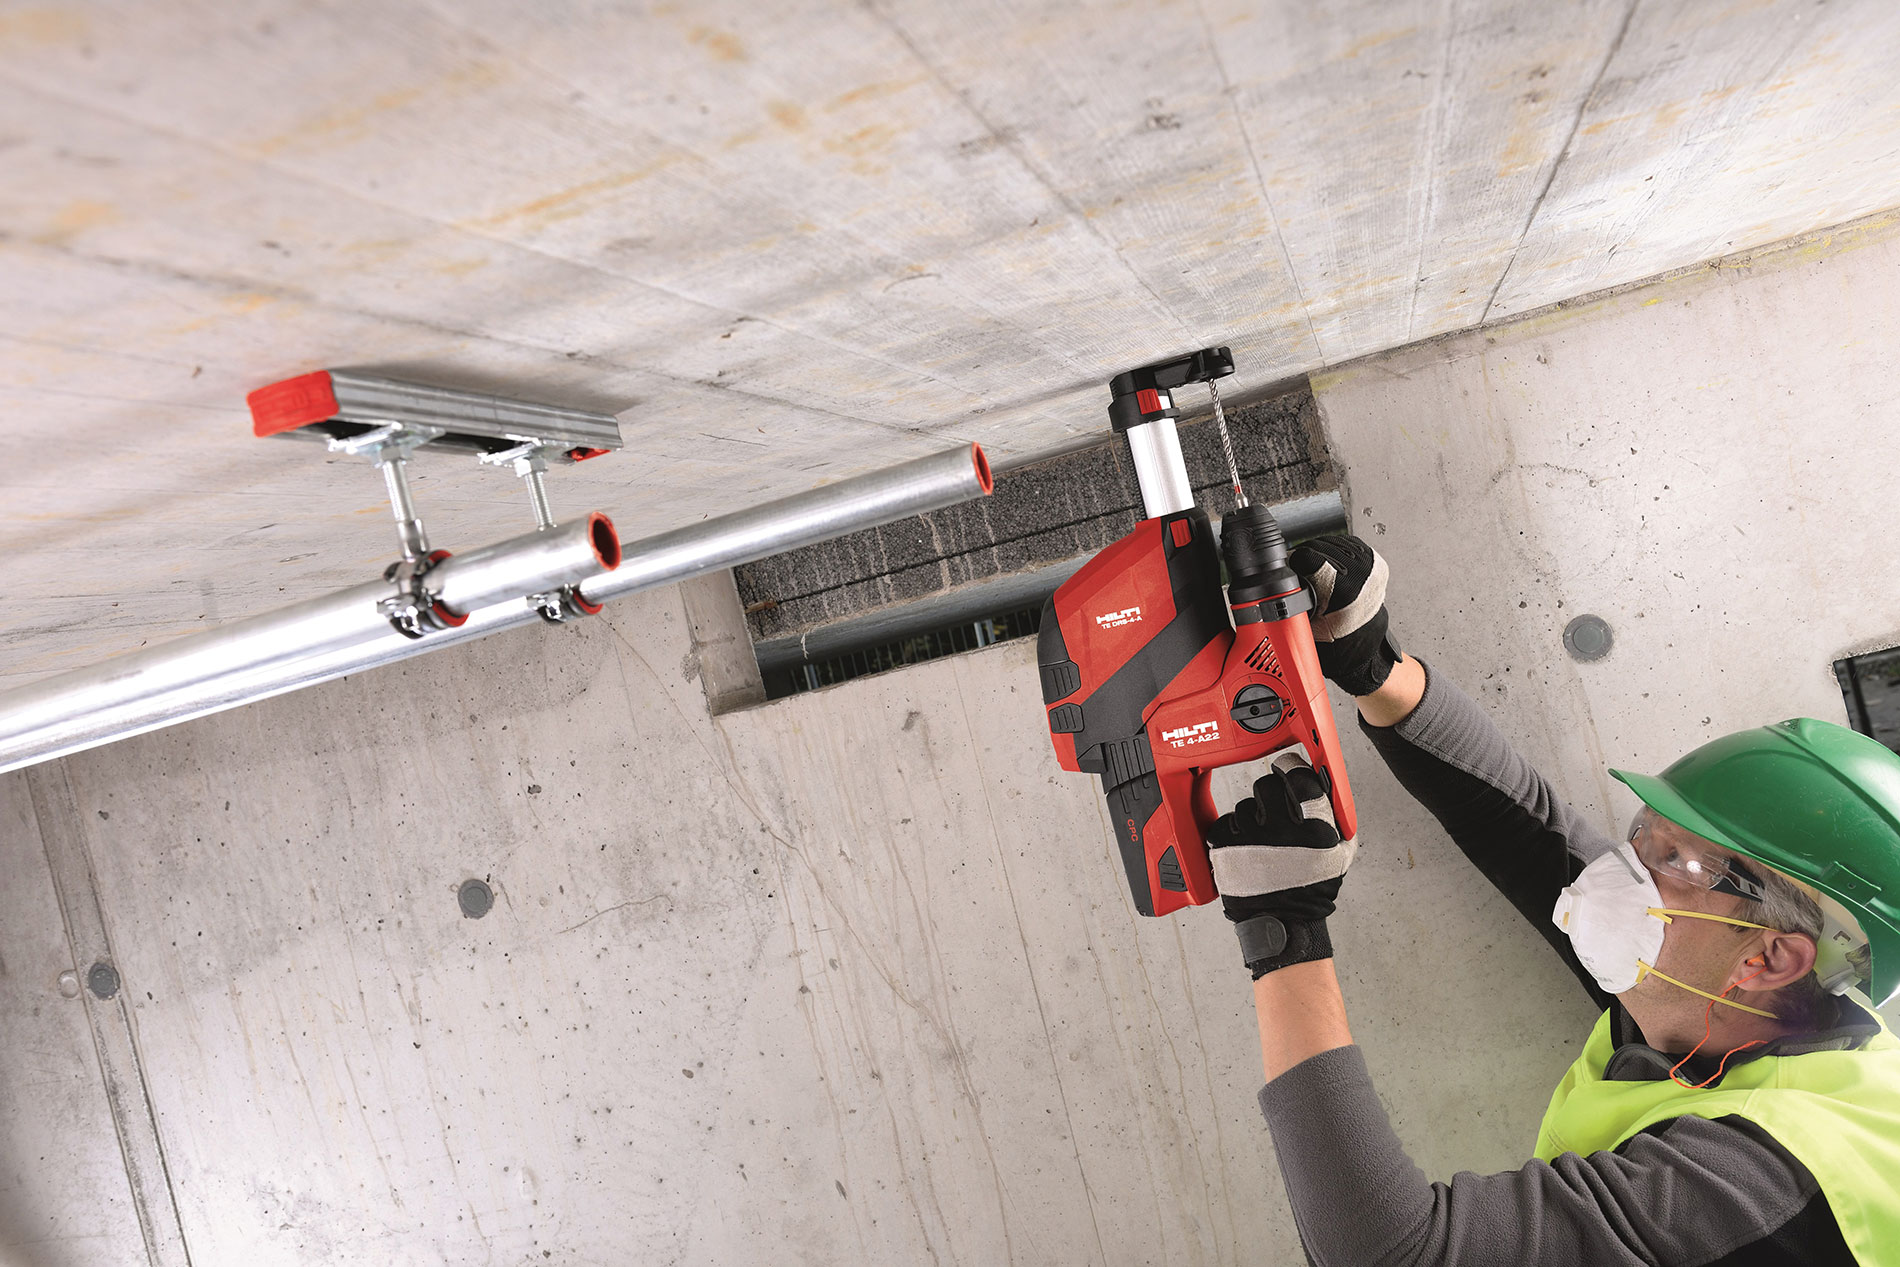 Hilti brushless rotary hammer with dust control www.hilti.com